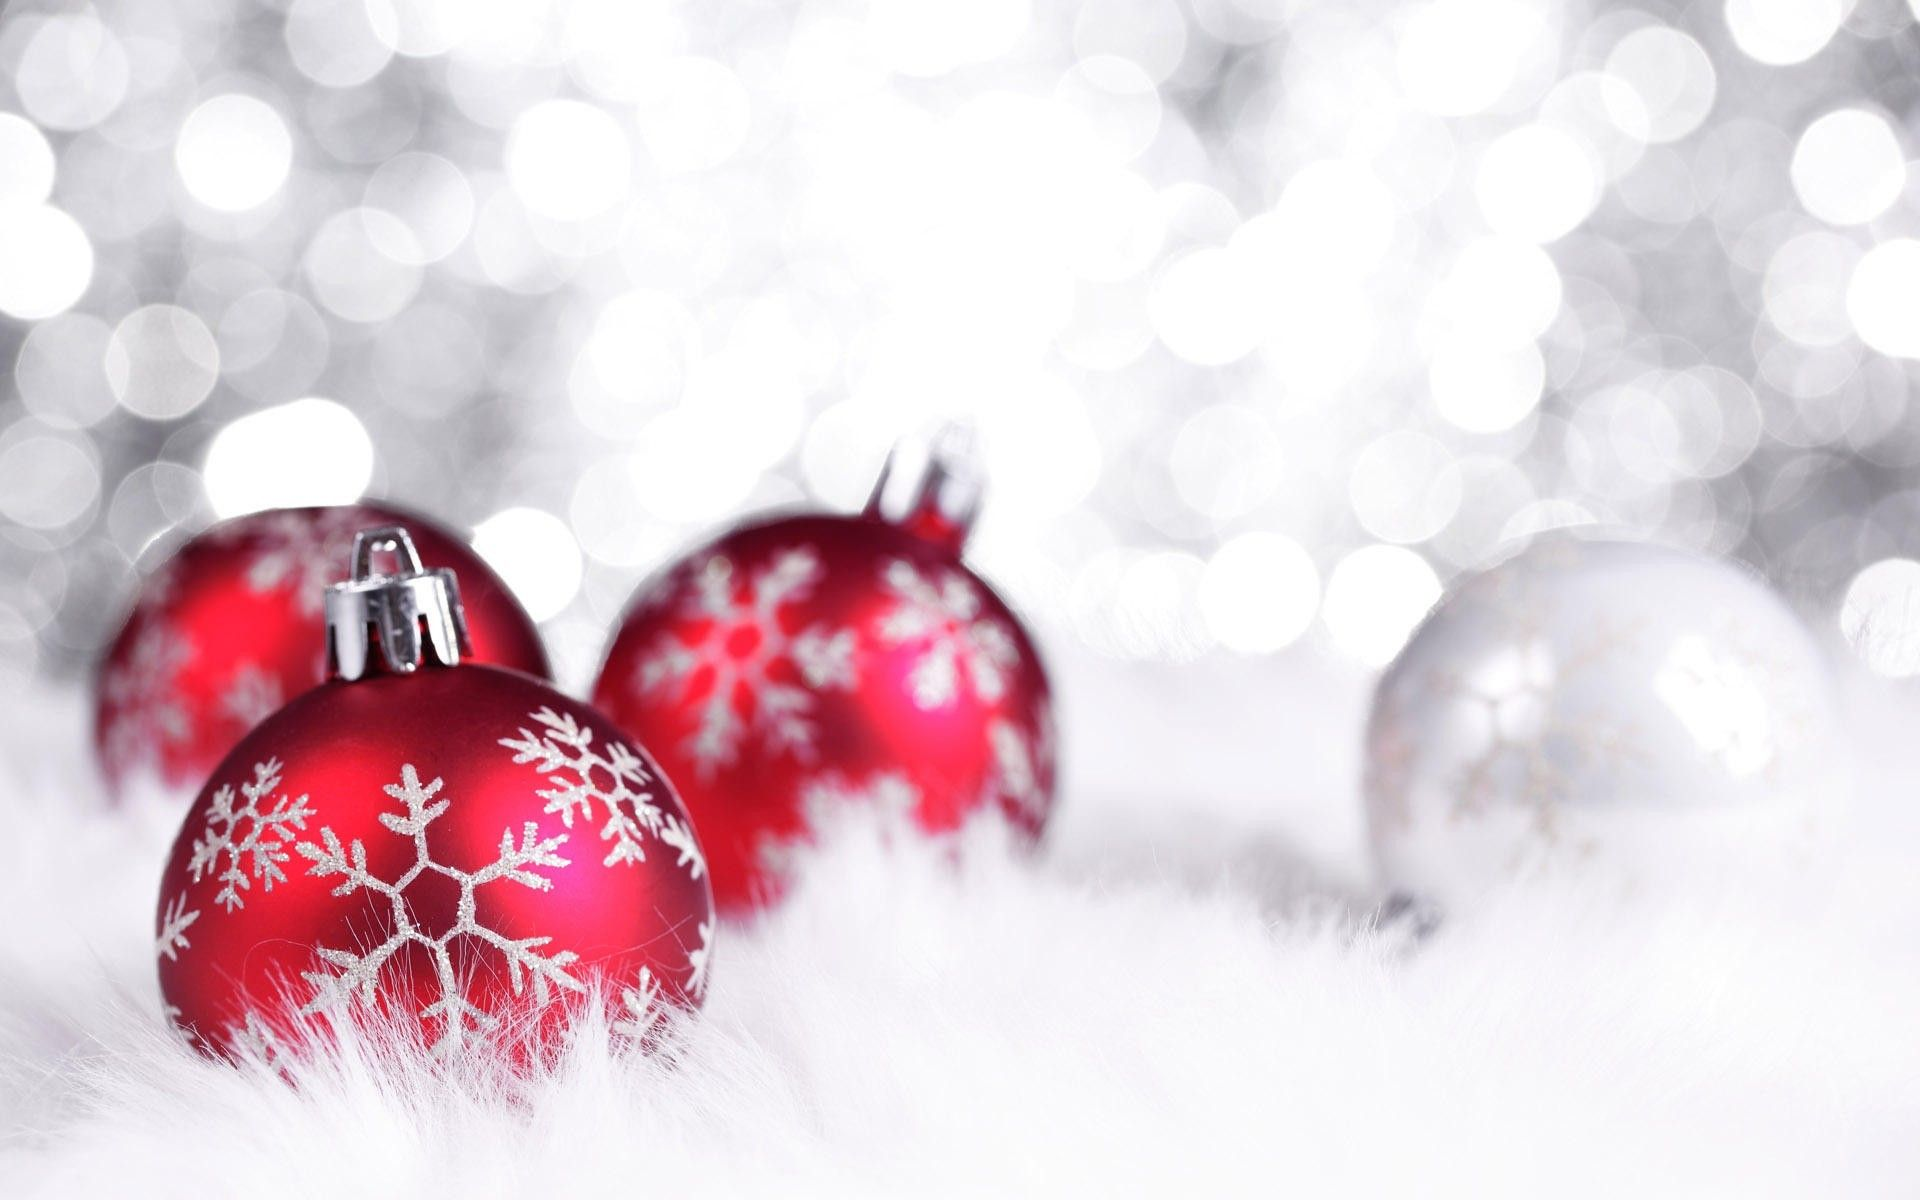 Christmas Background Hd.Pin On Christmas Decorations